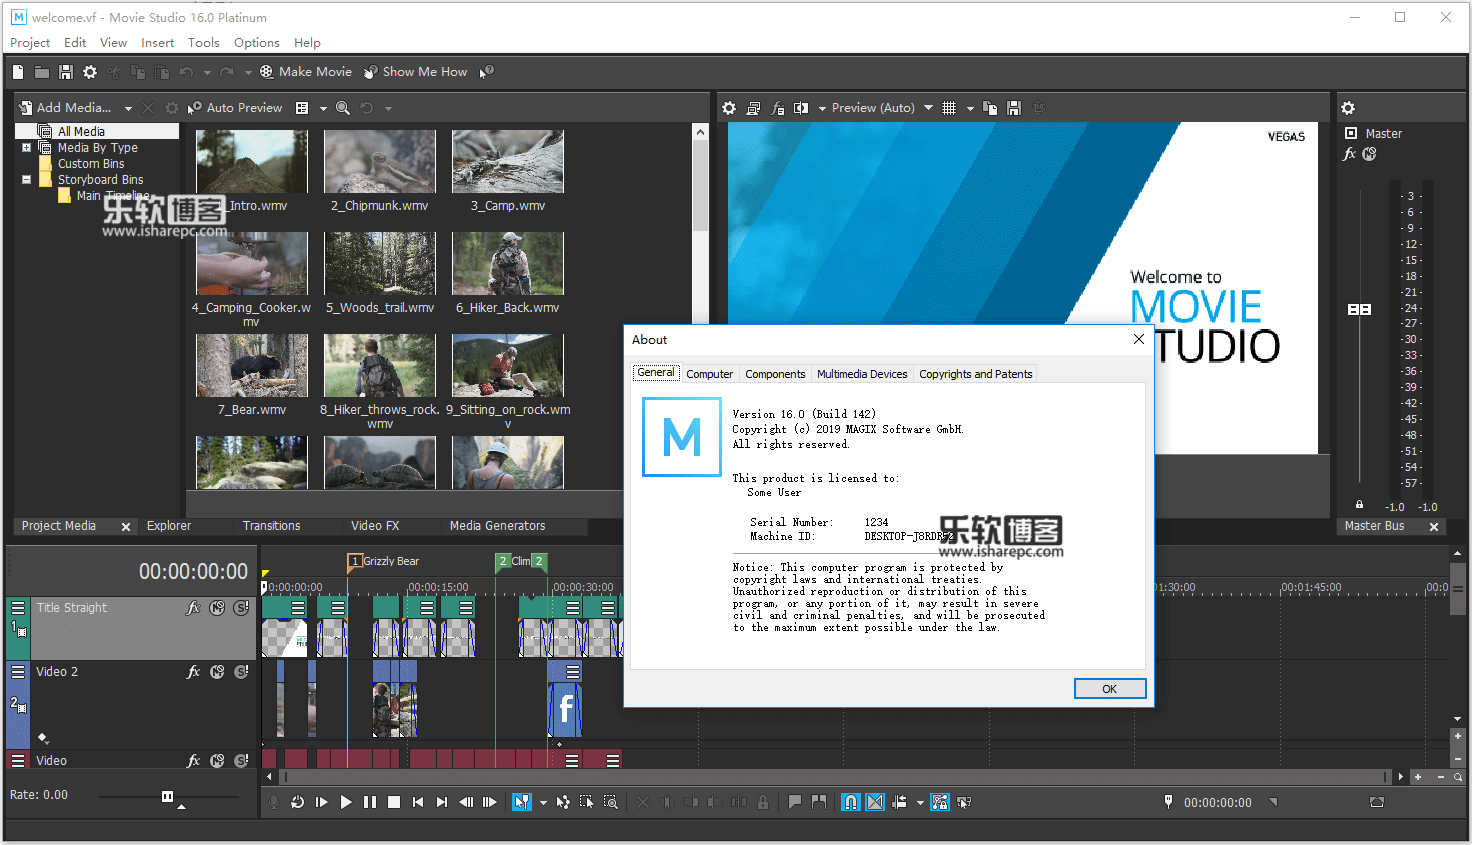 MAGIX VEGAS Movie Studio Platinum 16.0破解版